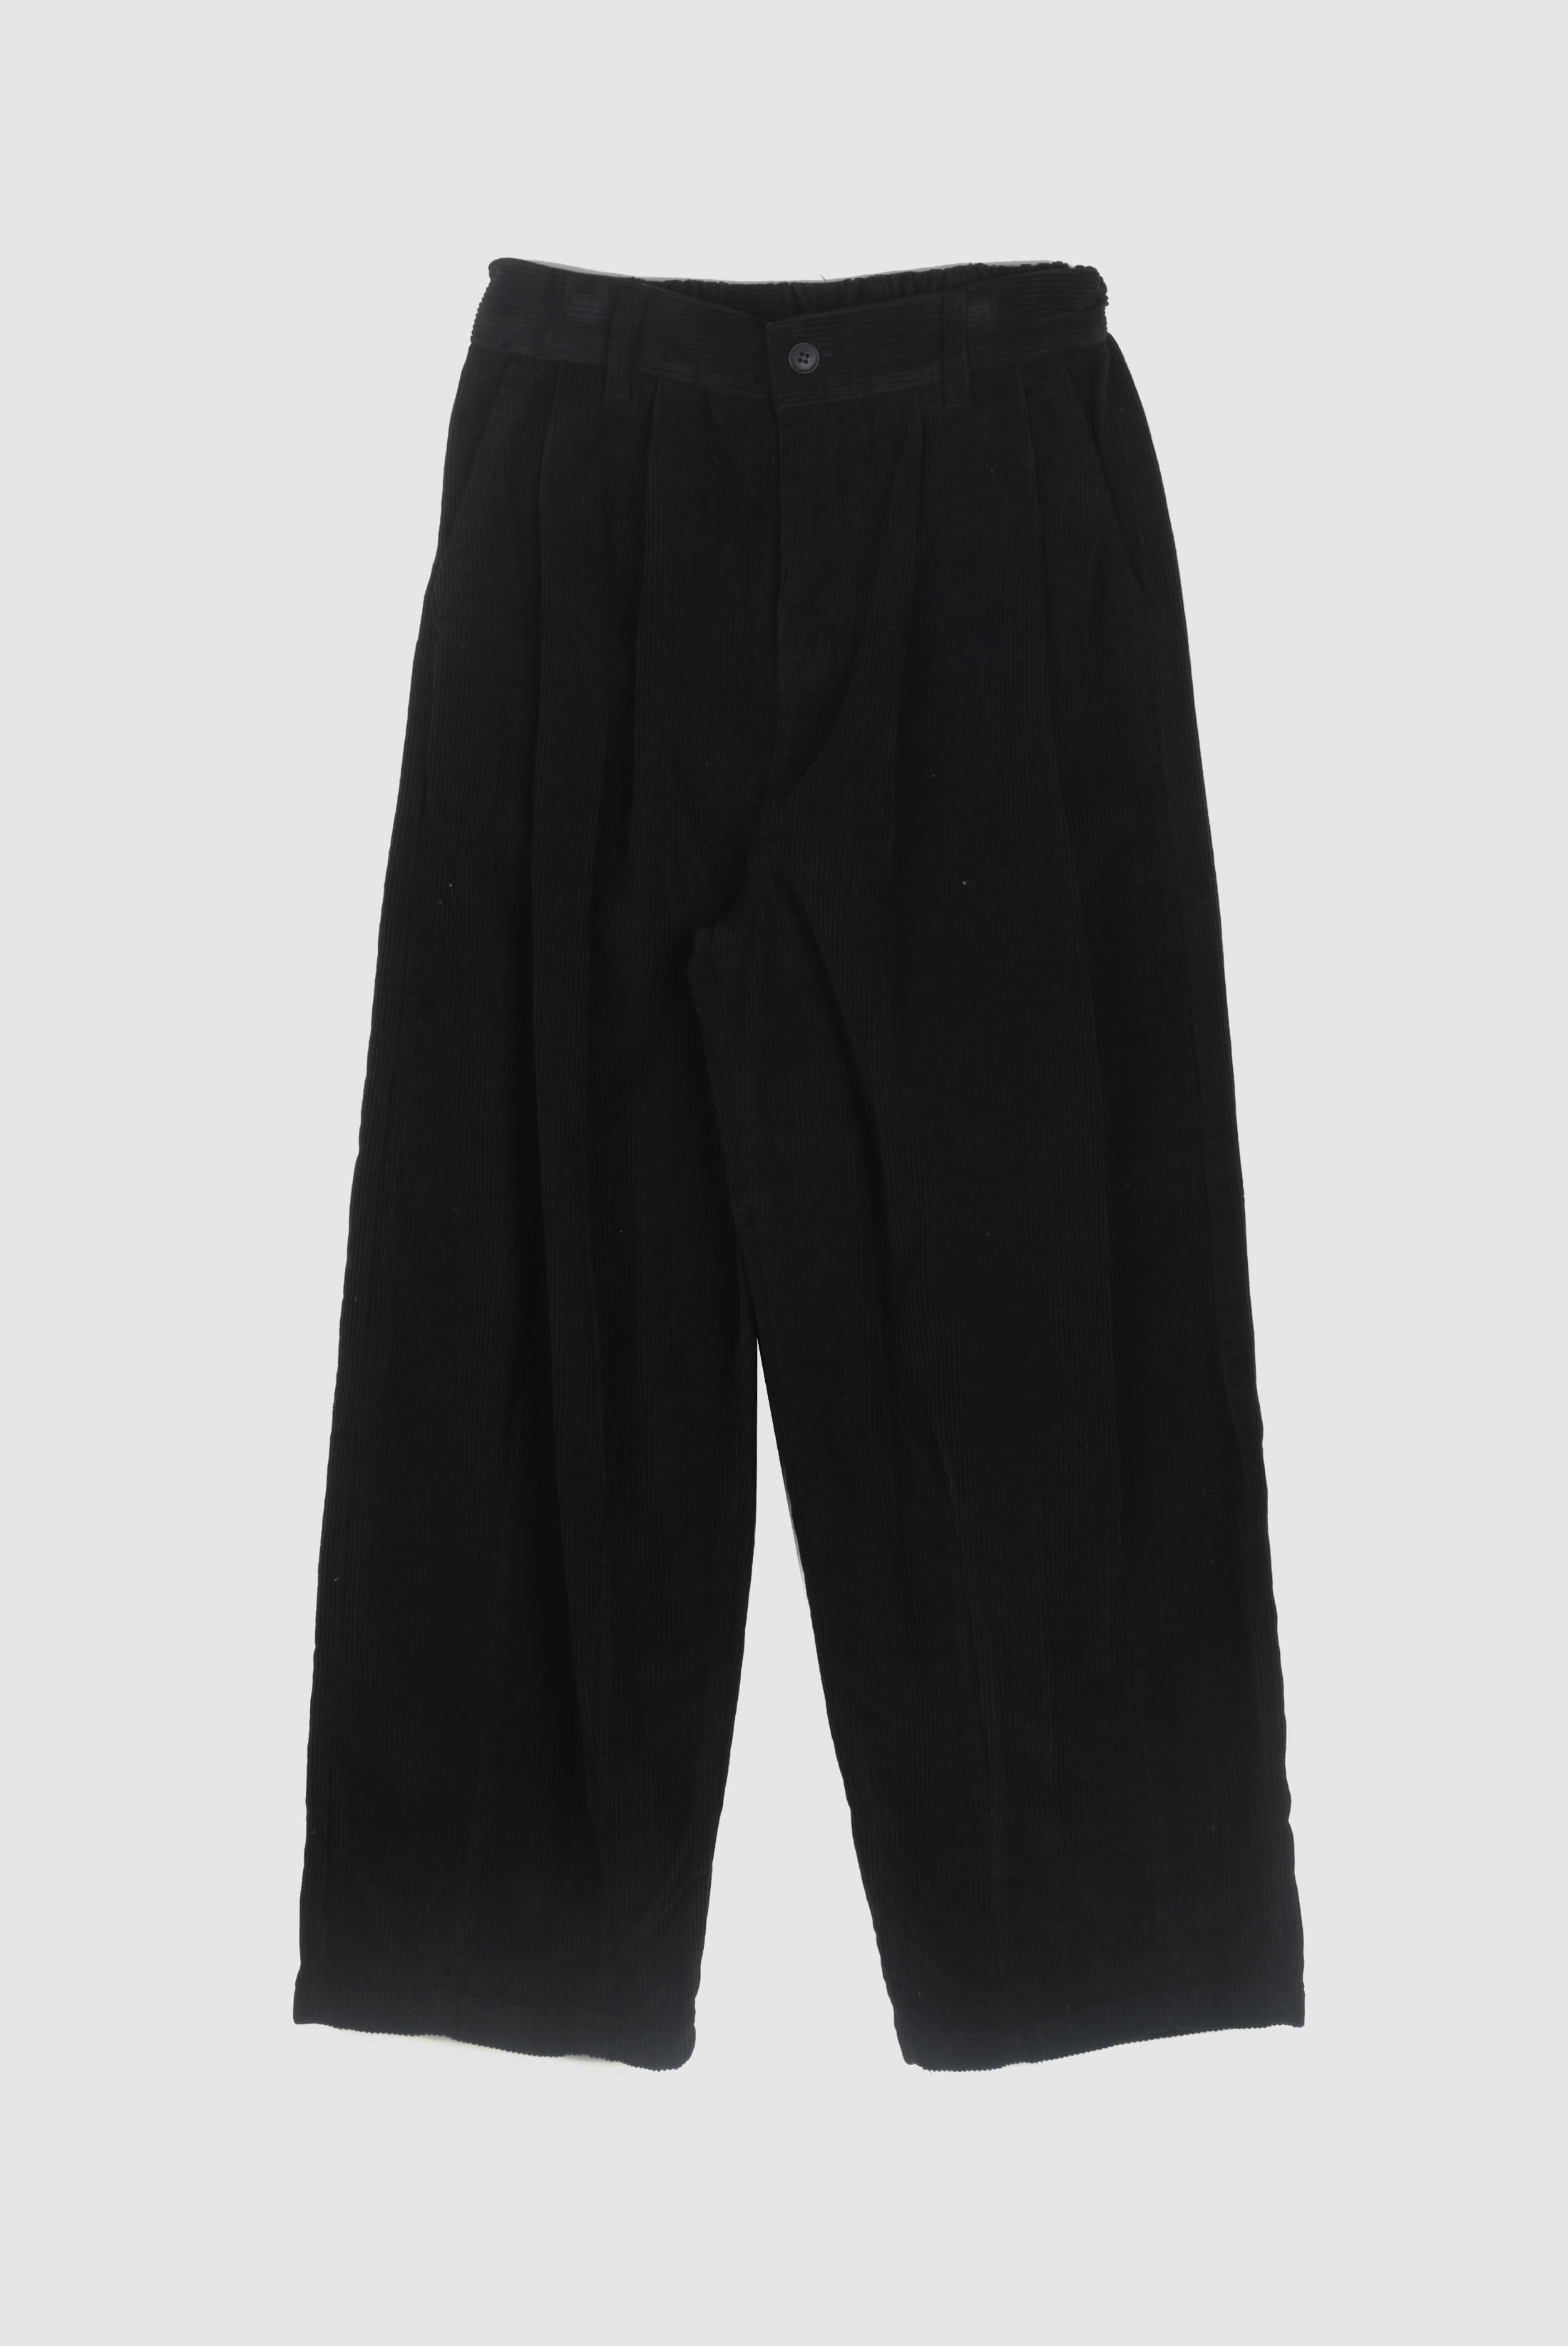 Corduroy_Balloon Wide Pants